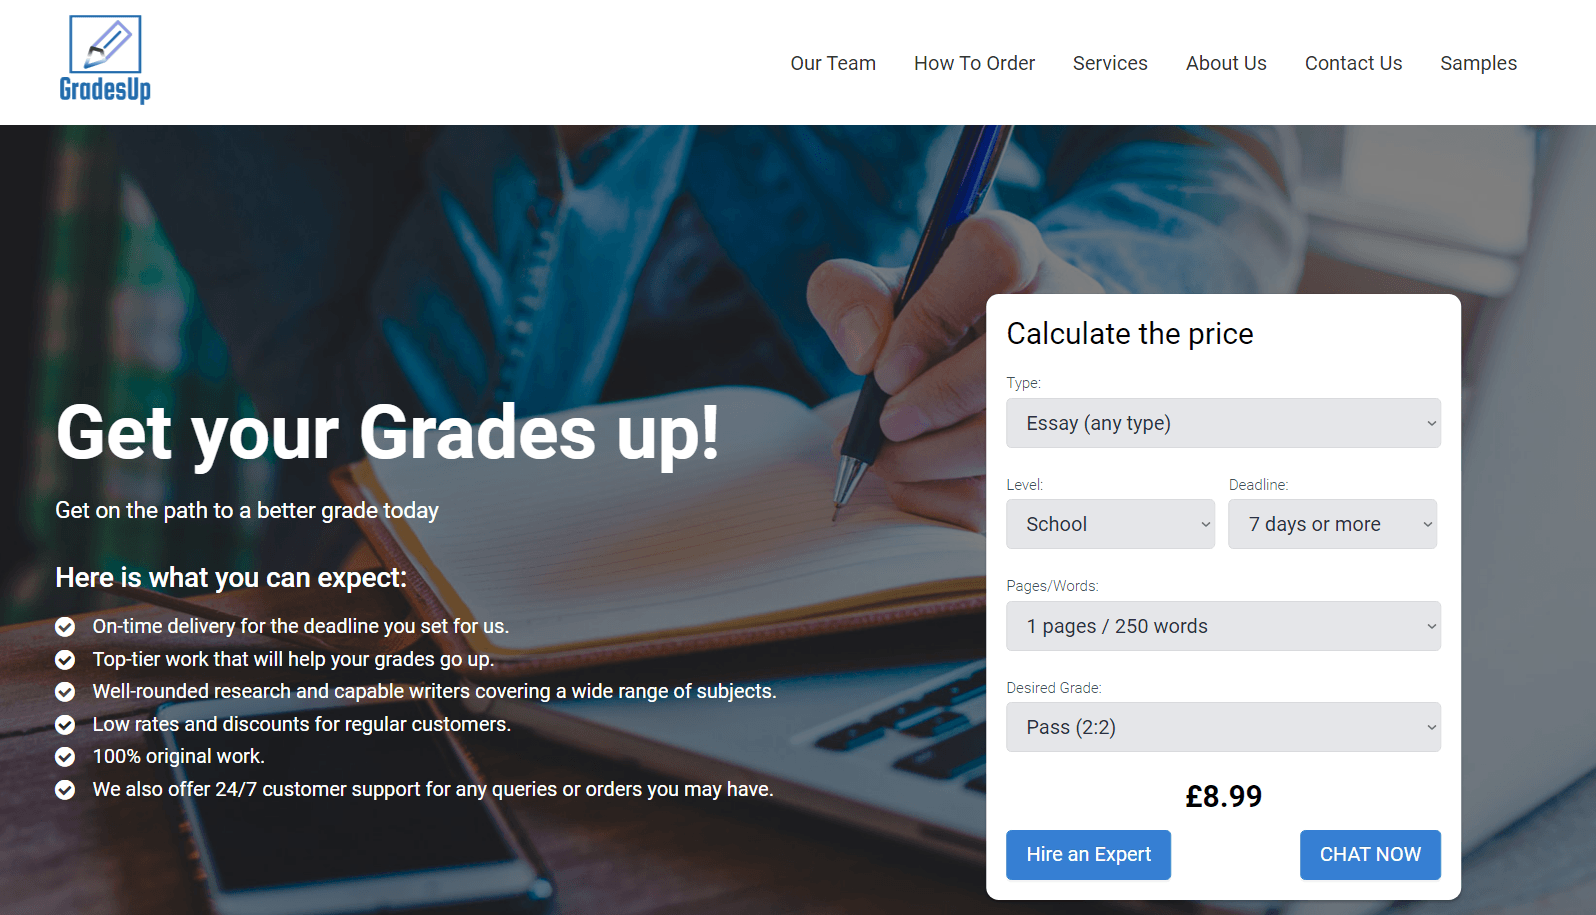 gradesup.co.uk